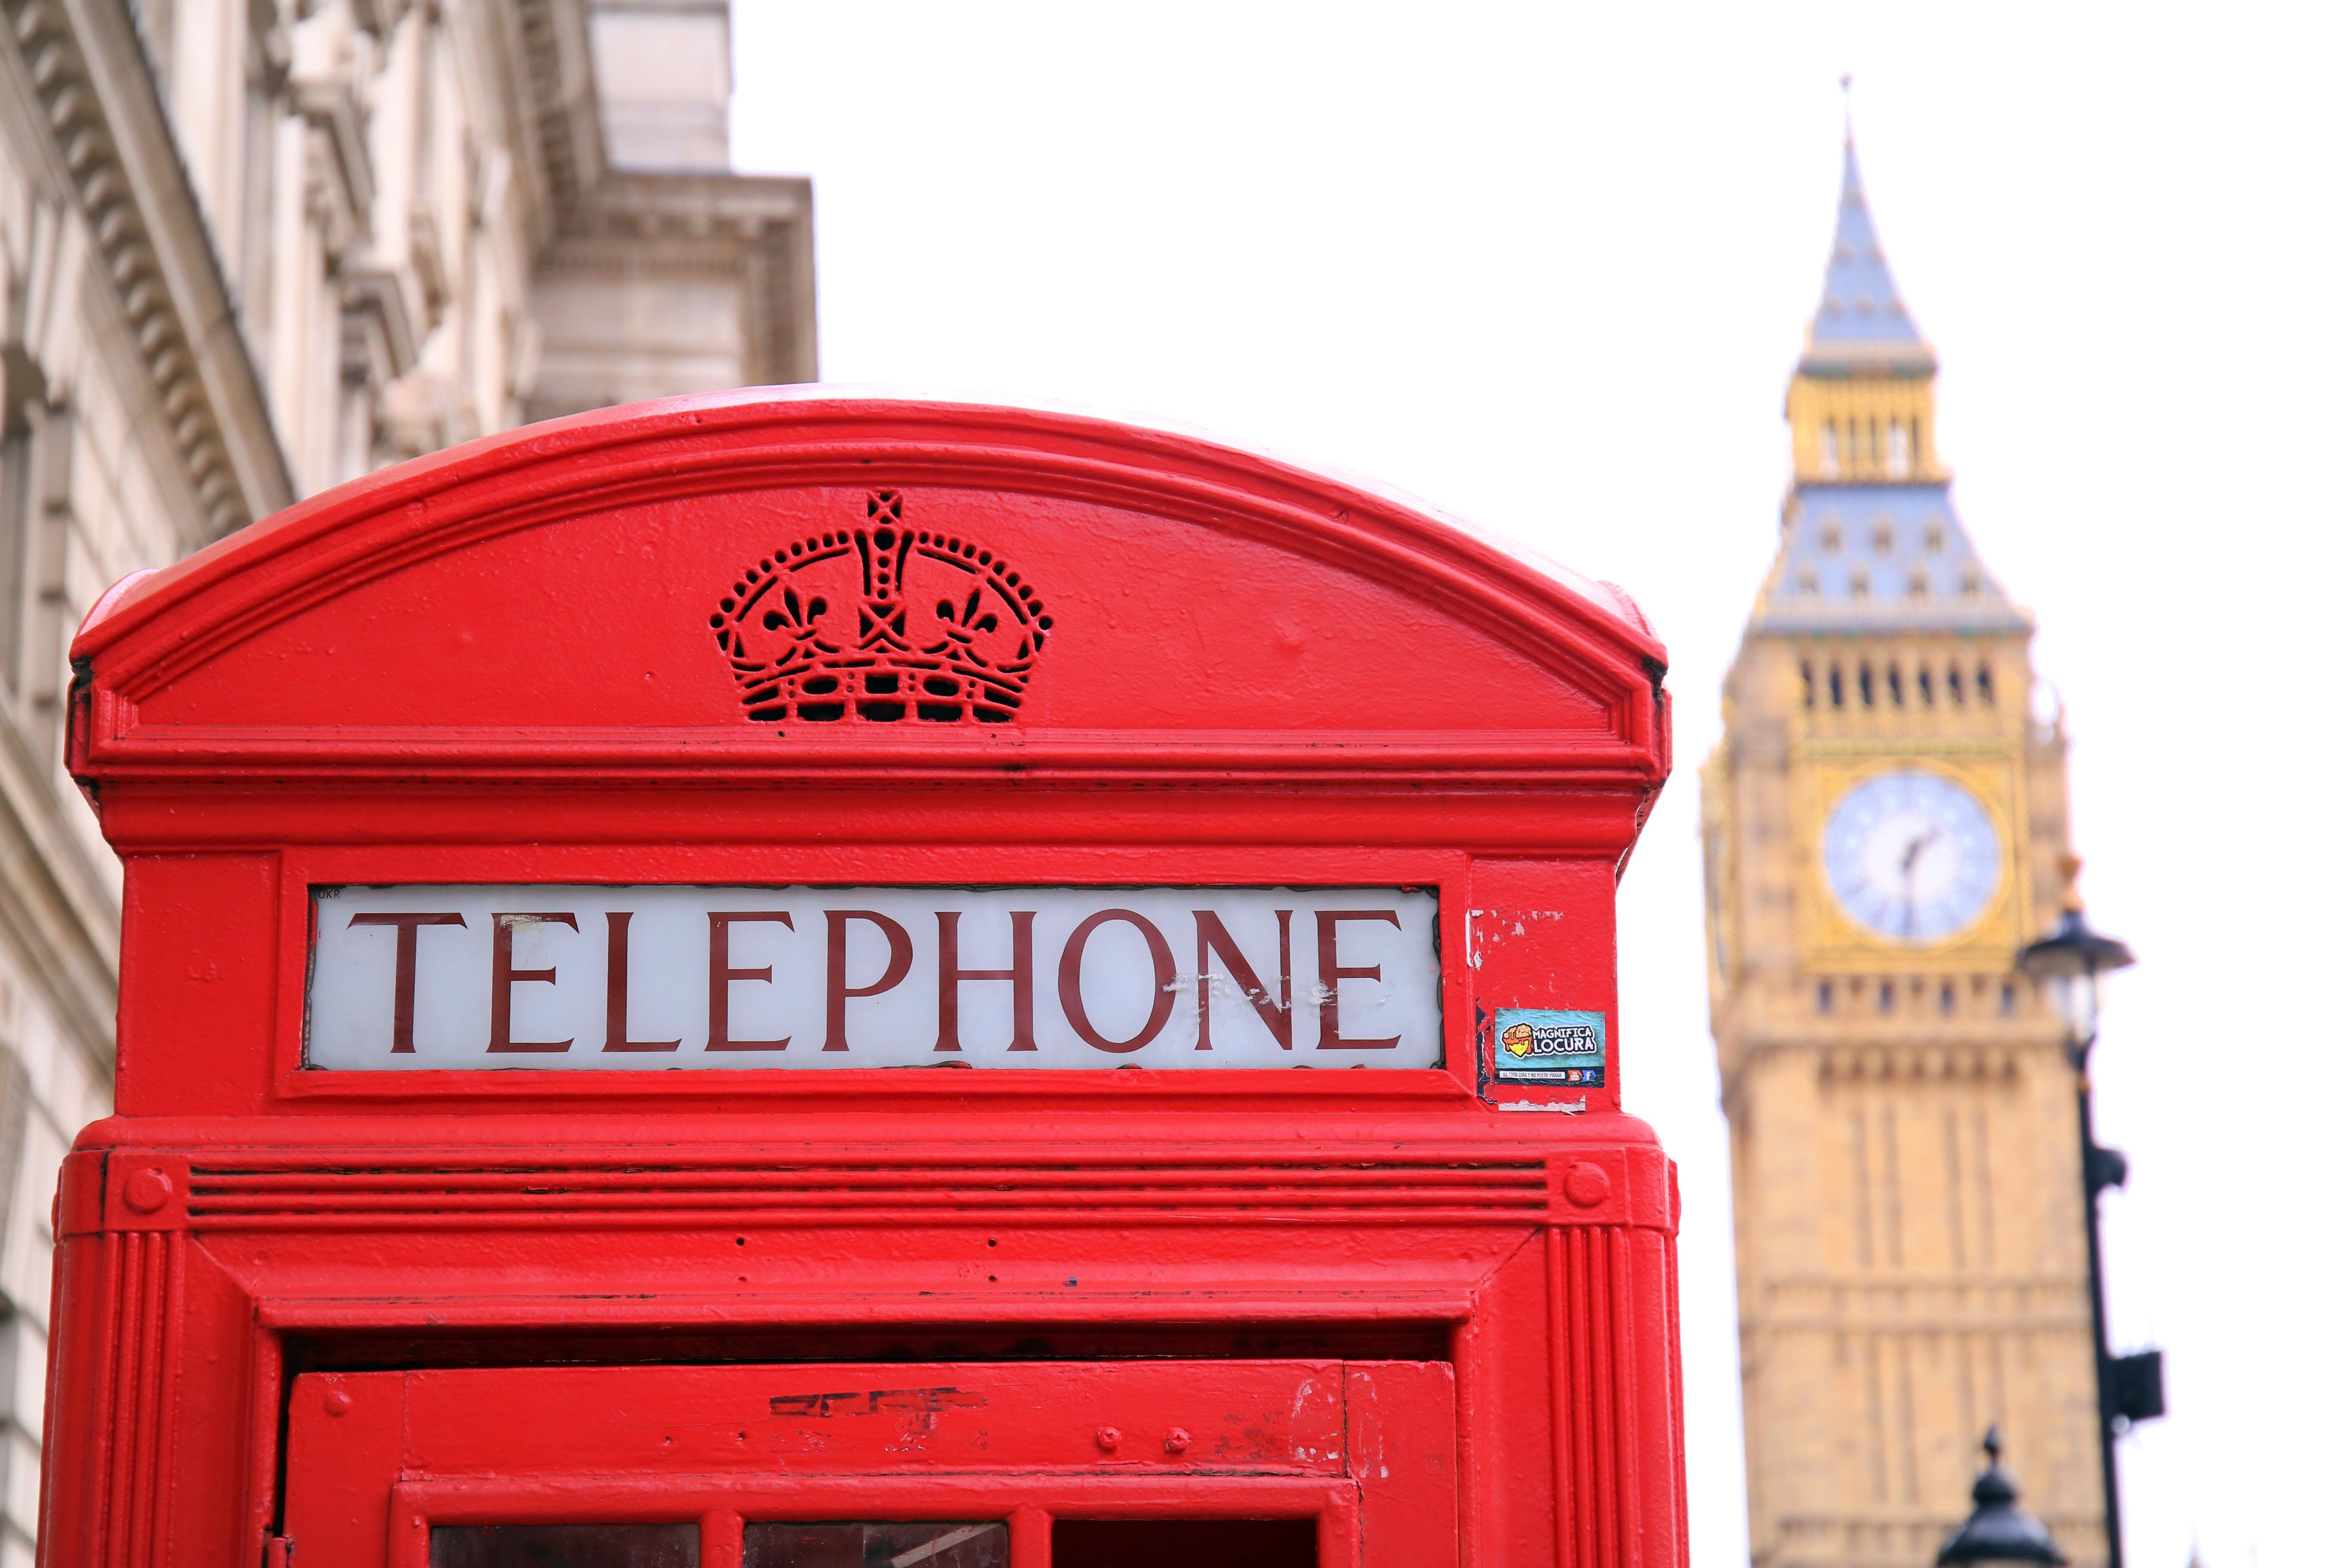 Red Telephone Booth in Front of Big Ben